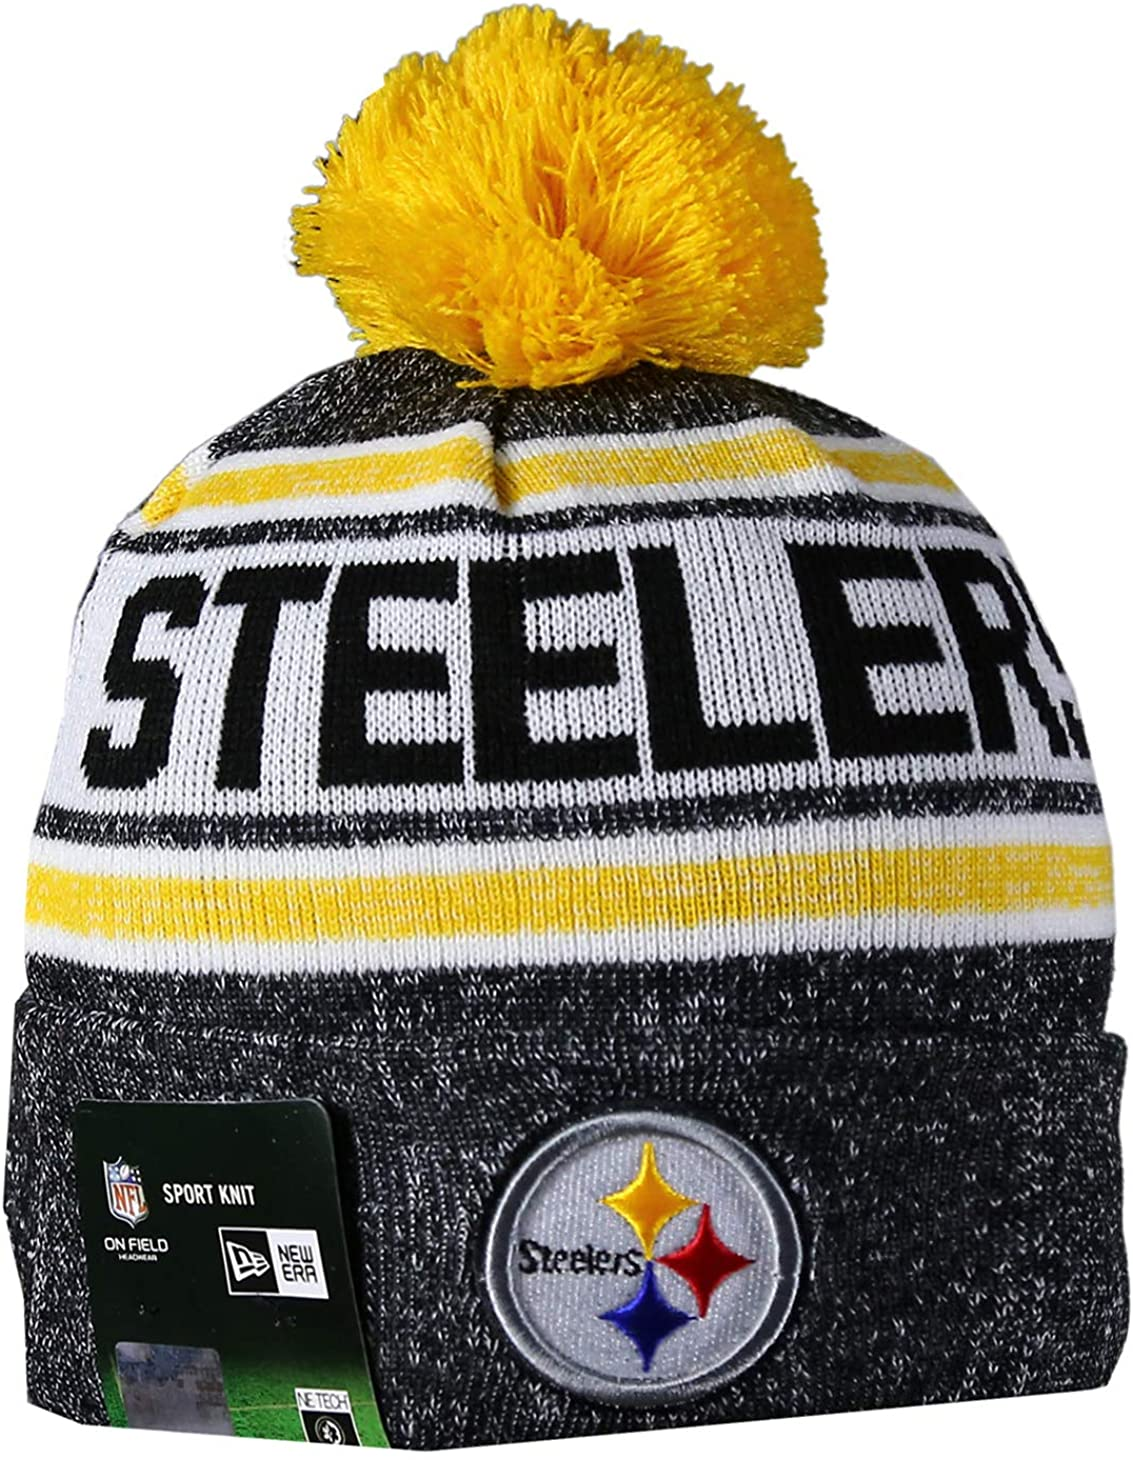 PIT STEELERS Sport Knit Winter Wool Warm Beanie Pom Hat Multicolour